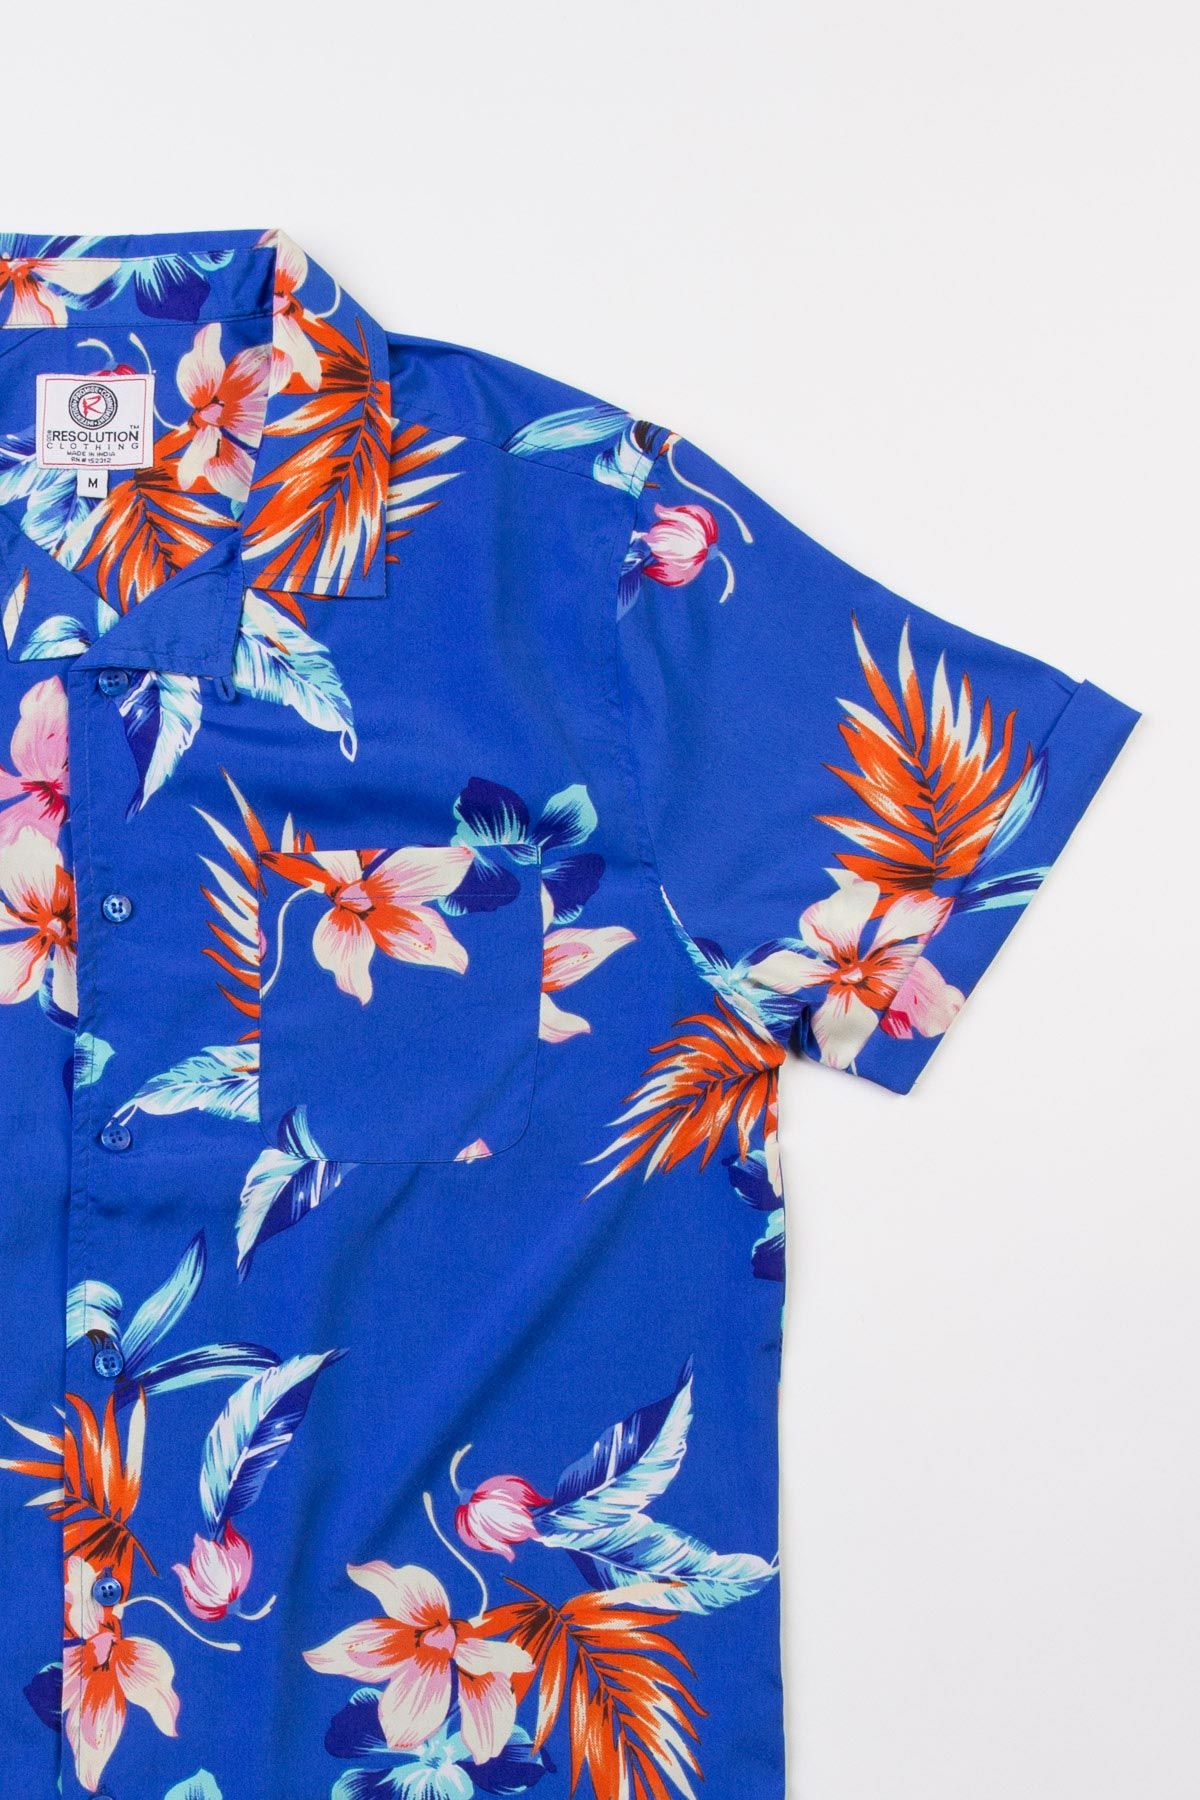 Blue flower print hawaiian shirt ragstock blue flower print hawaiian shirt izmirmasajfo